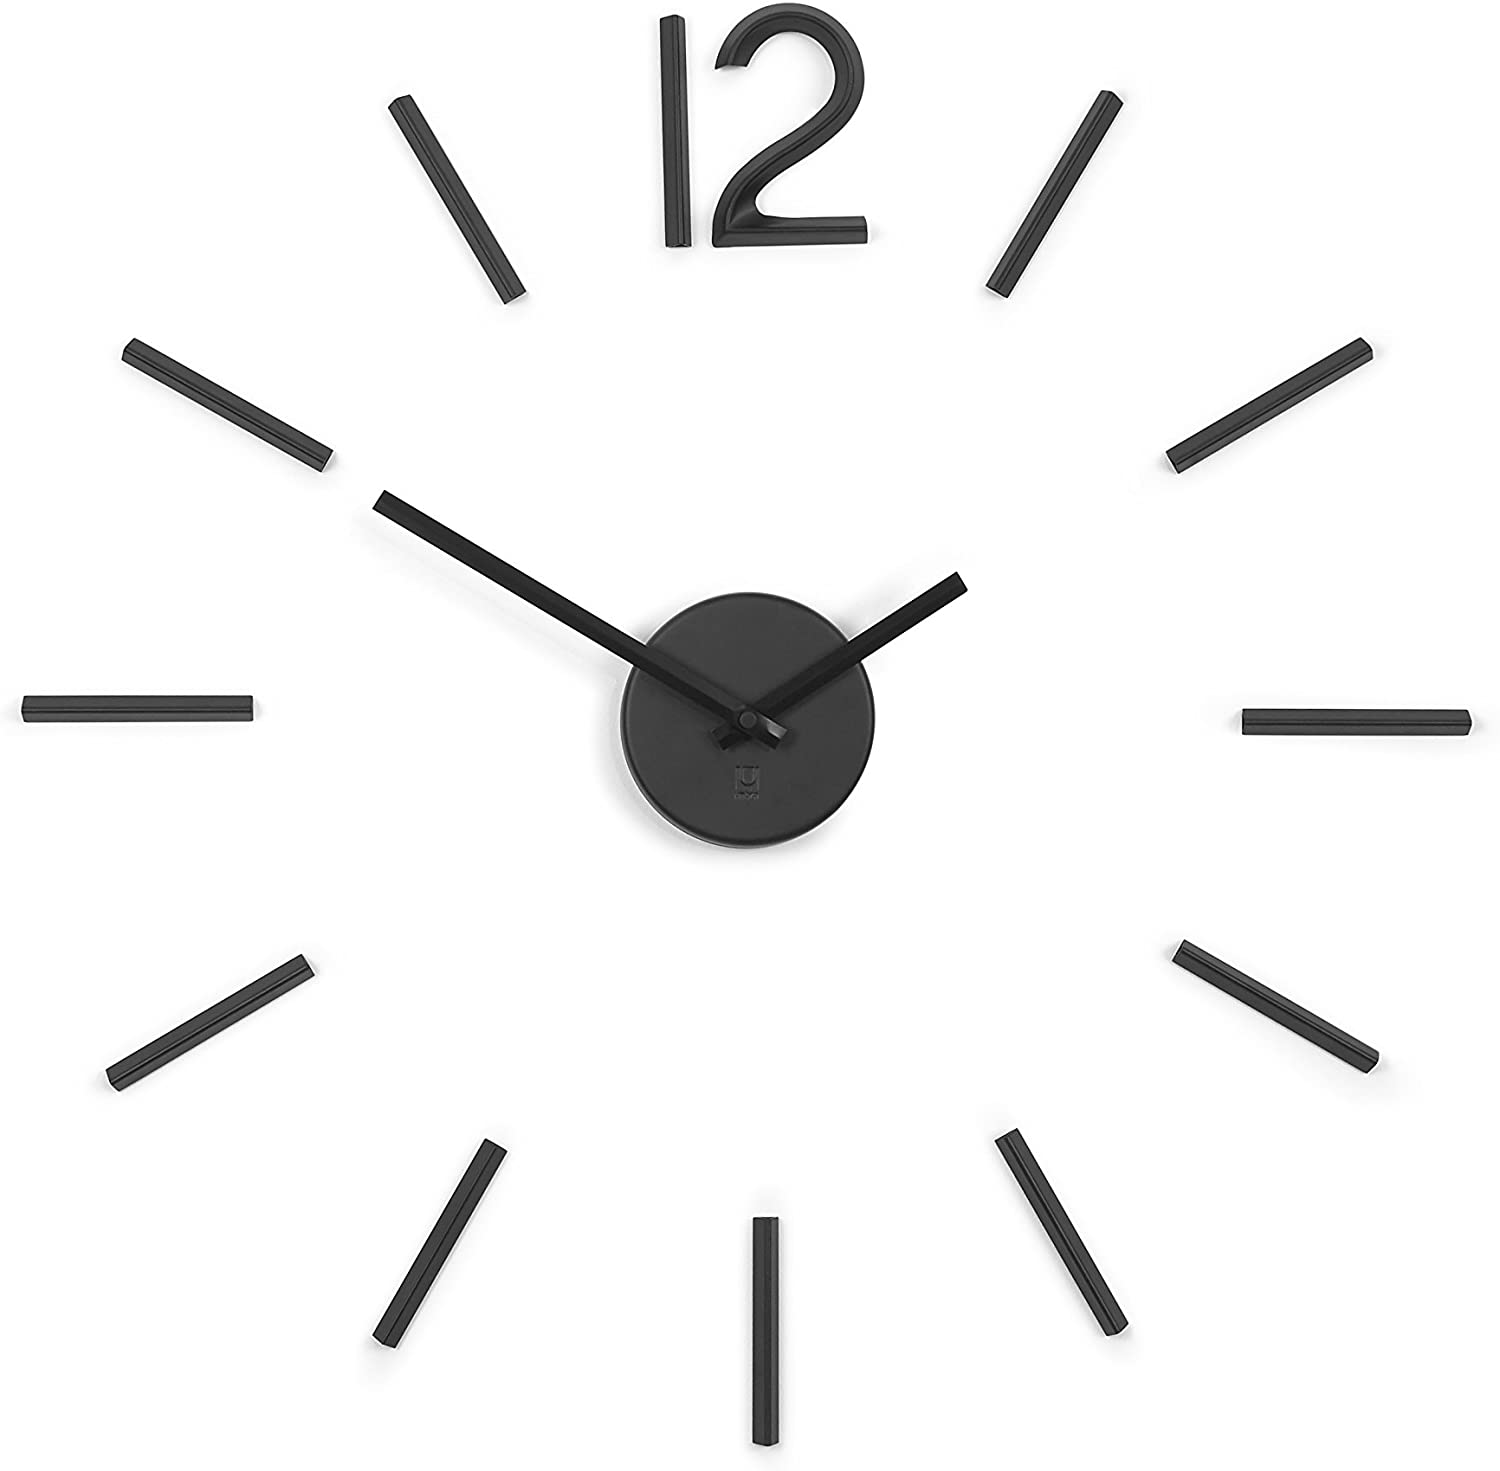 Umbra 1005400-040 Blink Wall Clock Black - Easy to Paste Wall Sticker Numbers, Frameless Large Decorative Wall Clock, Simple Indicators, Minimalist, Black,39.25 Inch L x 39.25 Inch W x 1.38 Inch H